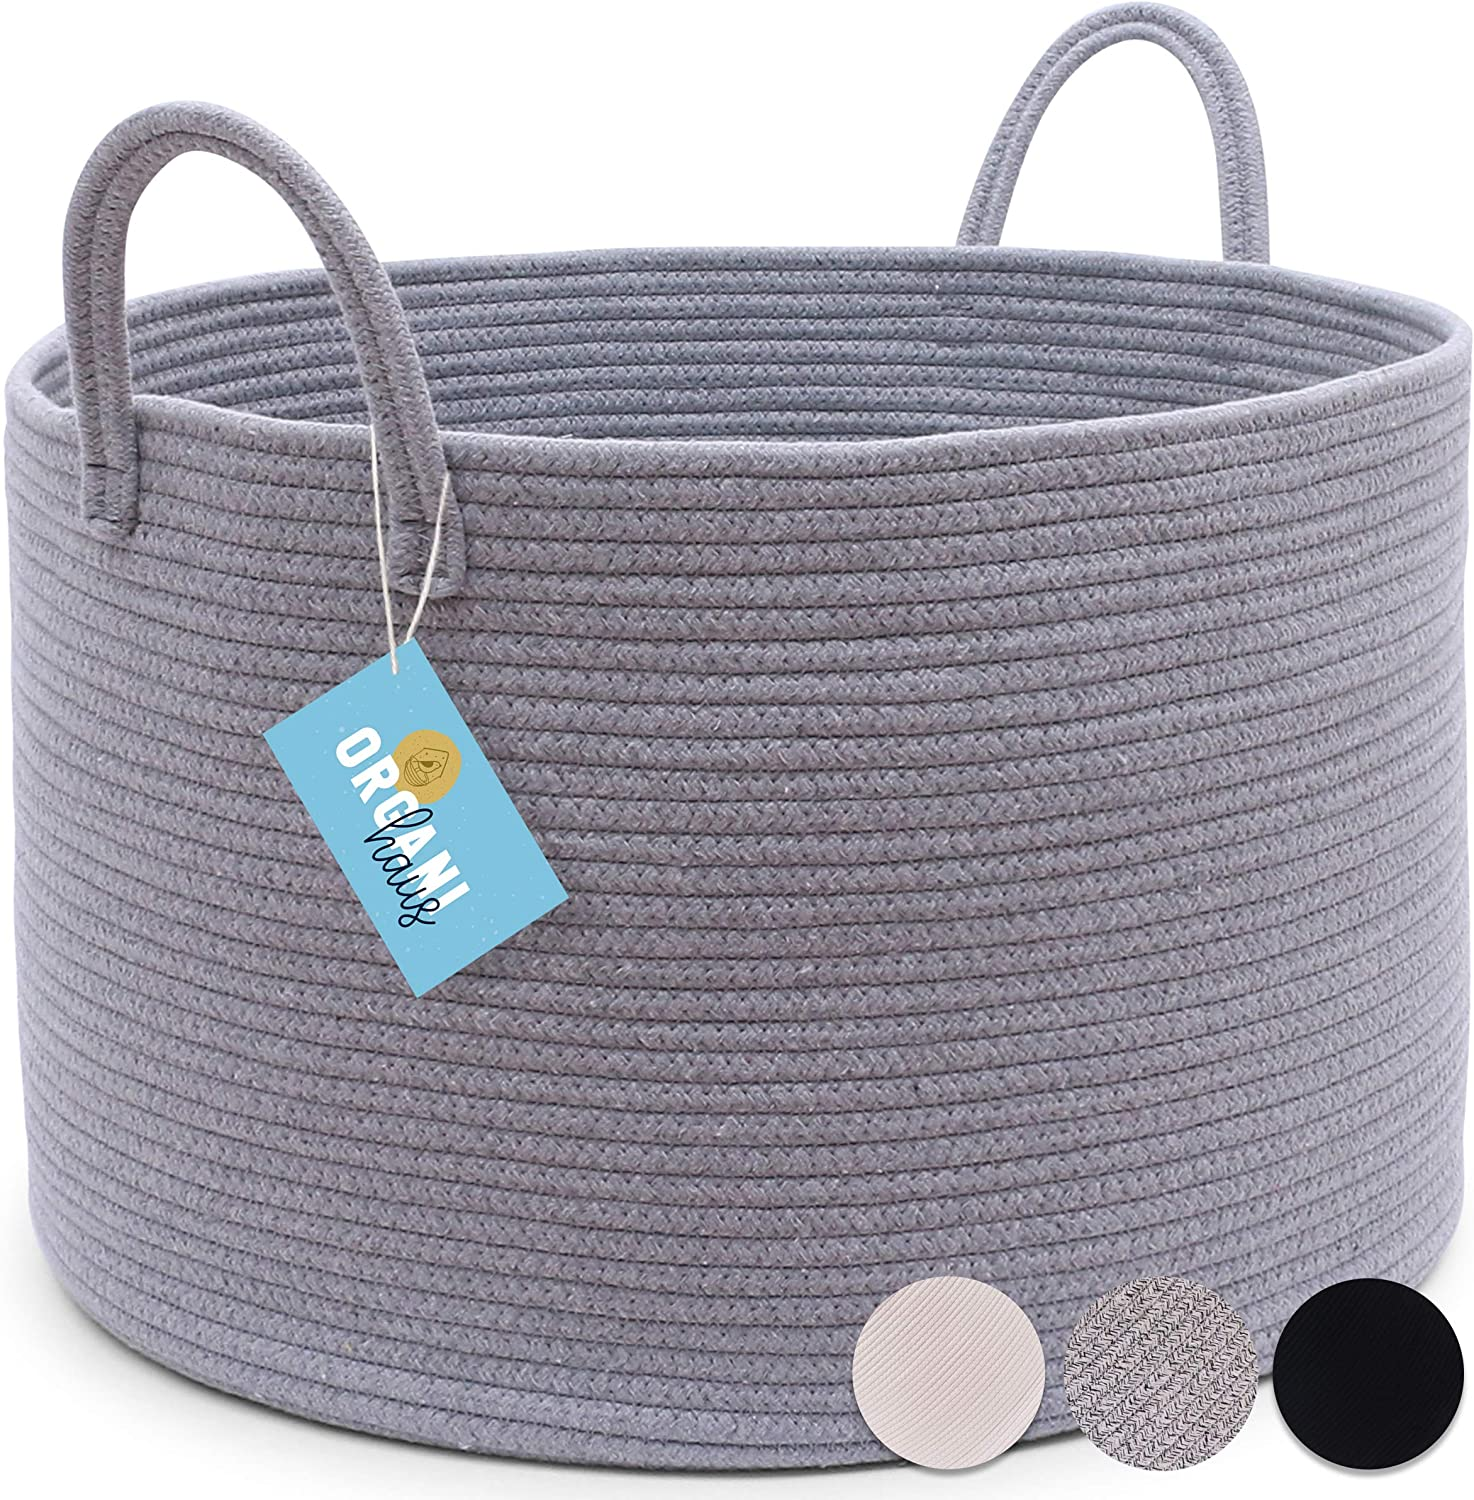 "XXL Extra Large Grey Cotton Rope Basket | 20""x13.5"" Blanket Storage Basket with Long Handles 